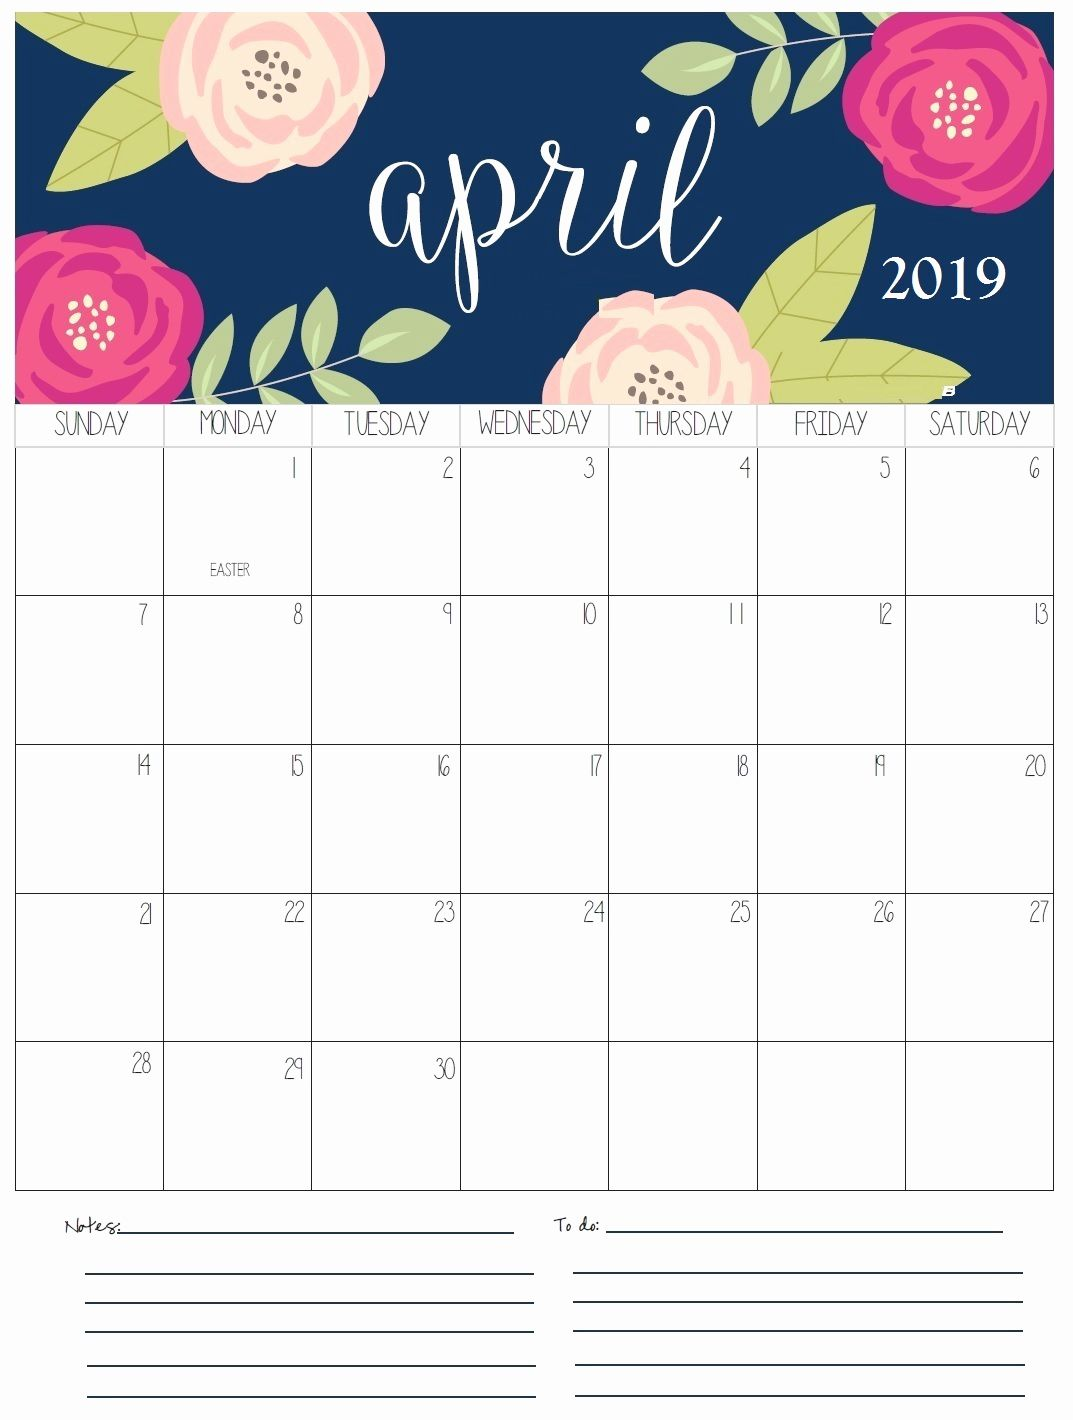 April 2019 Calendar With Week Numbers Monthly Calendar Template